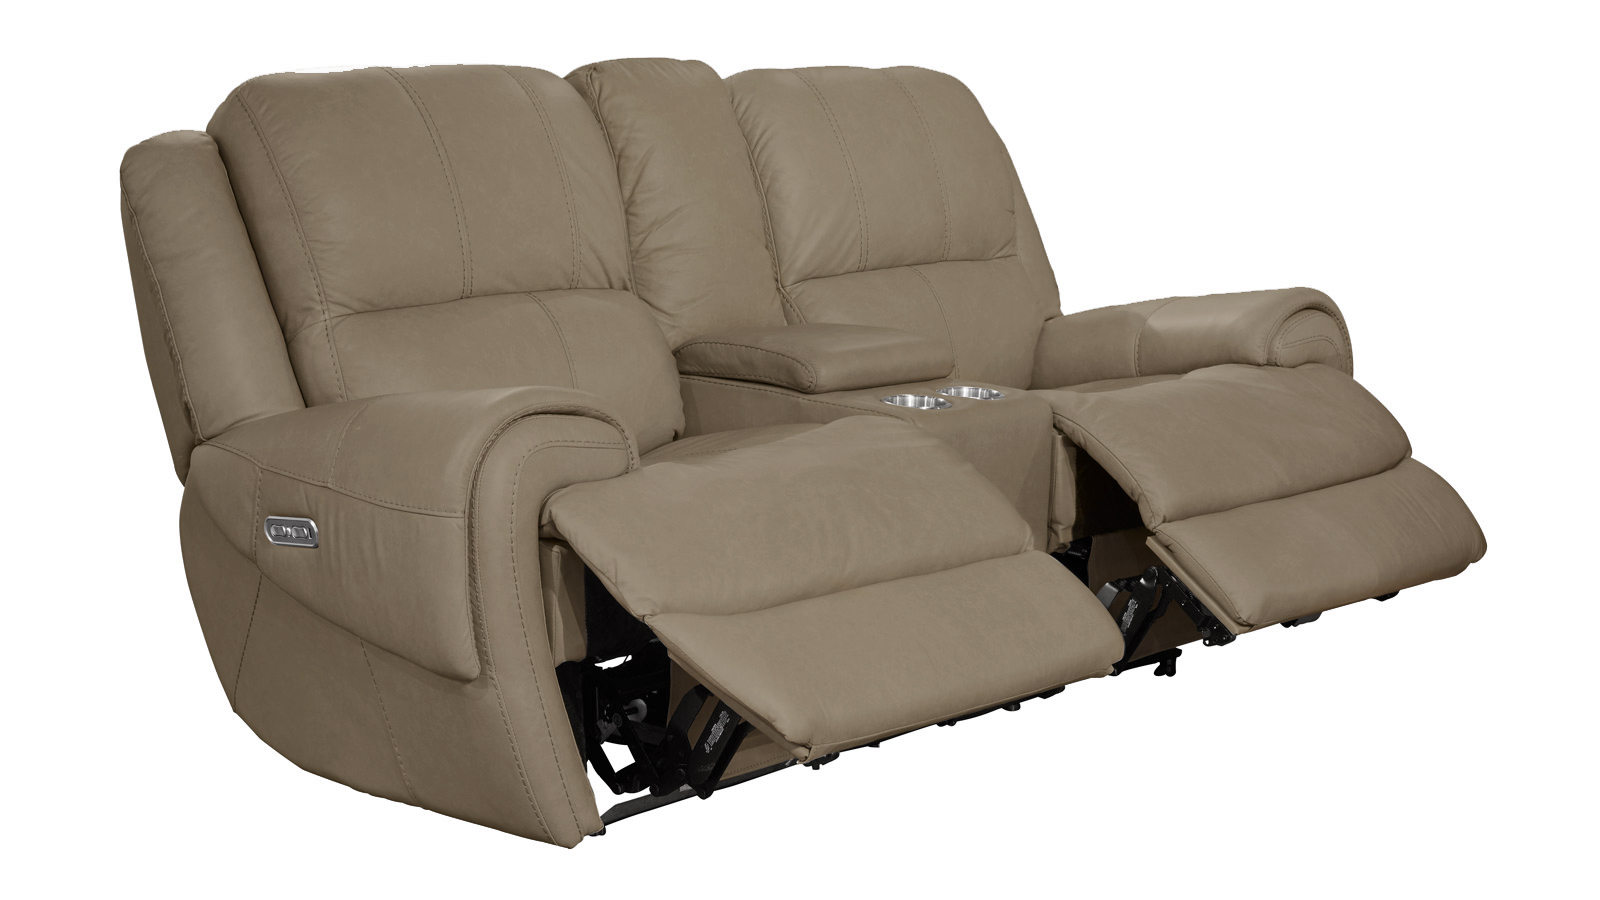 Remarkable American Power Reclining Loveseat W Console Caraccident5 Cool Chair Designs And Ideas Caraccident5Info